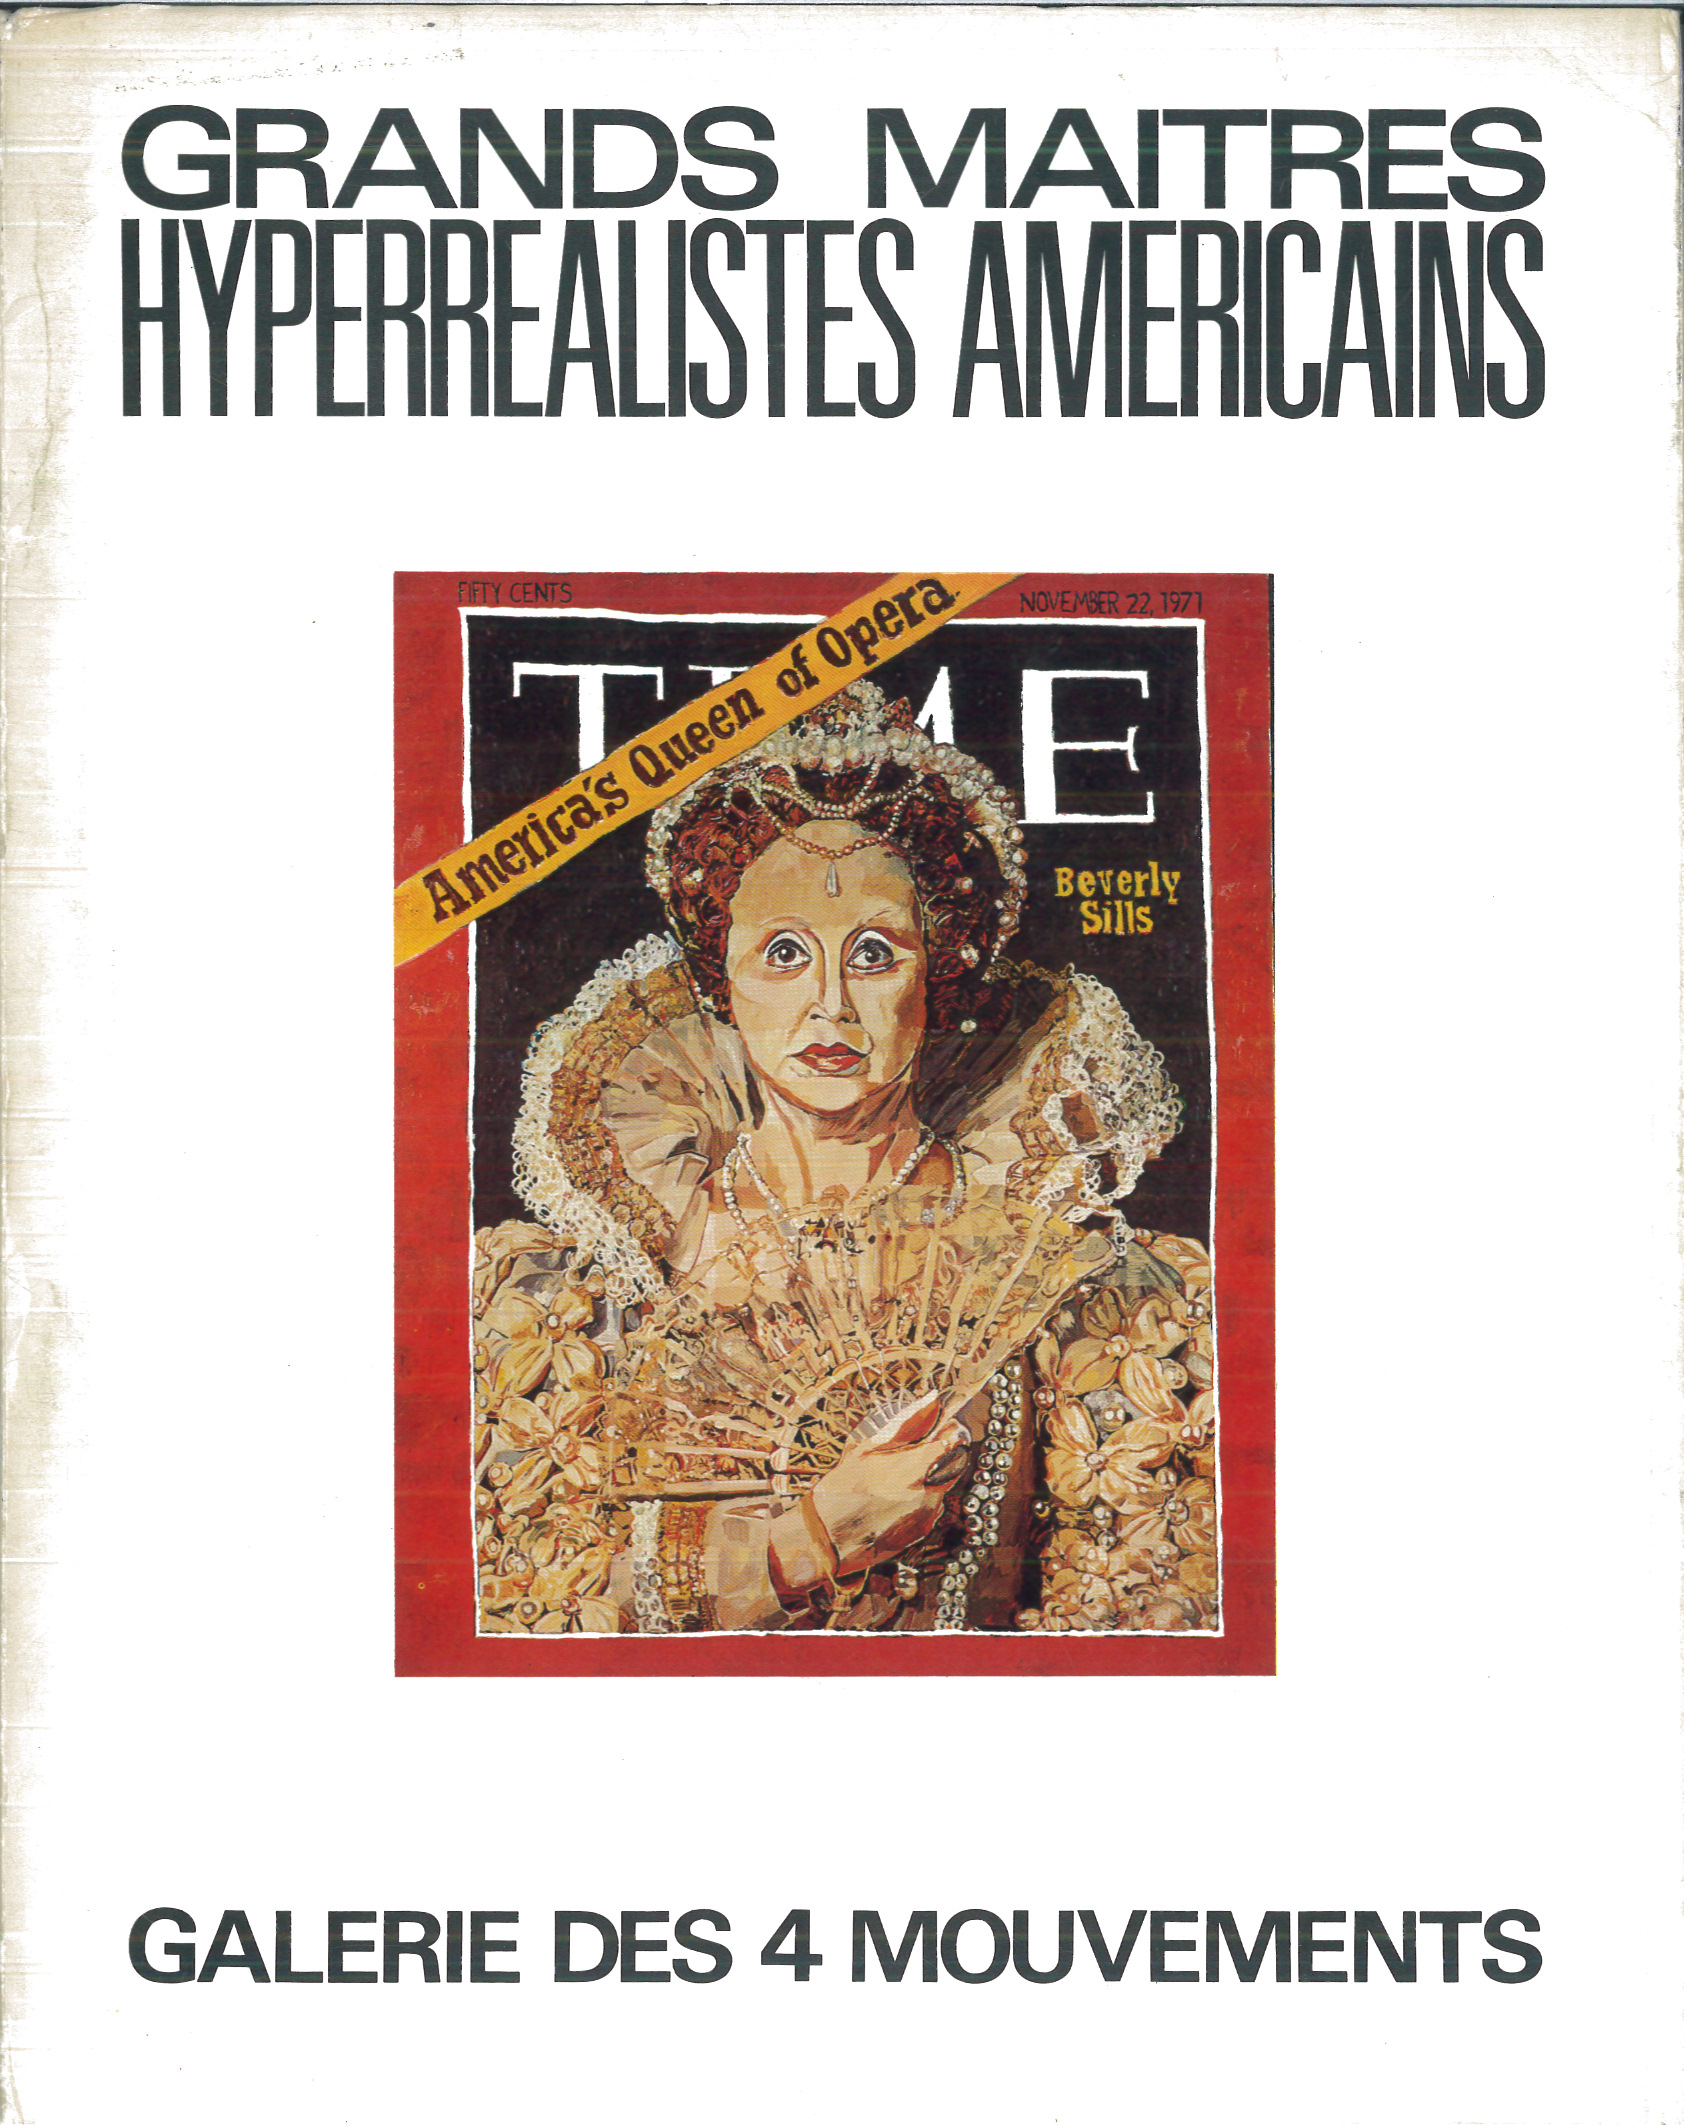 4-1-Grands-Maitres-Hyperrealistes-Americains-Paris-Galerie-des-4-Mouvements-1973